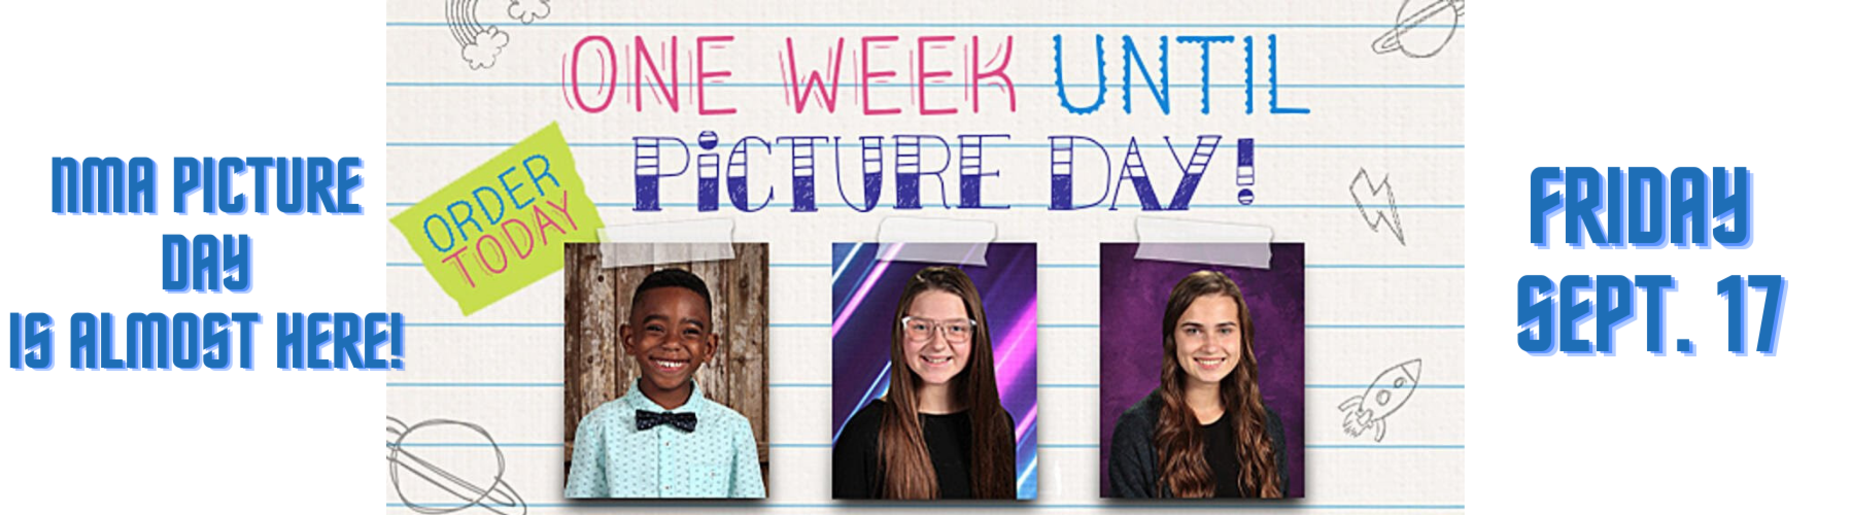 Picture day information - Friday, september 17th